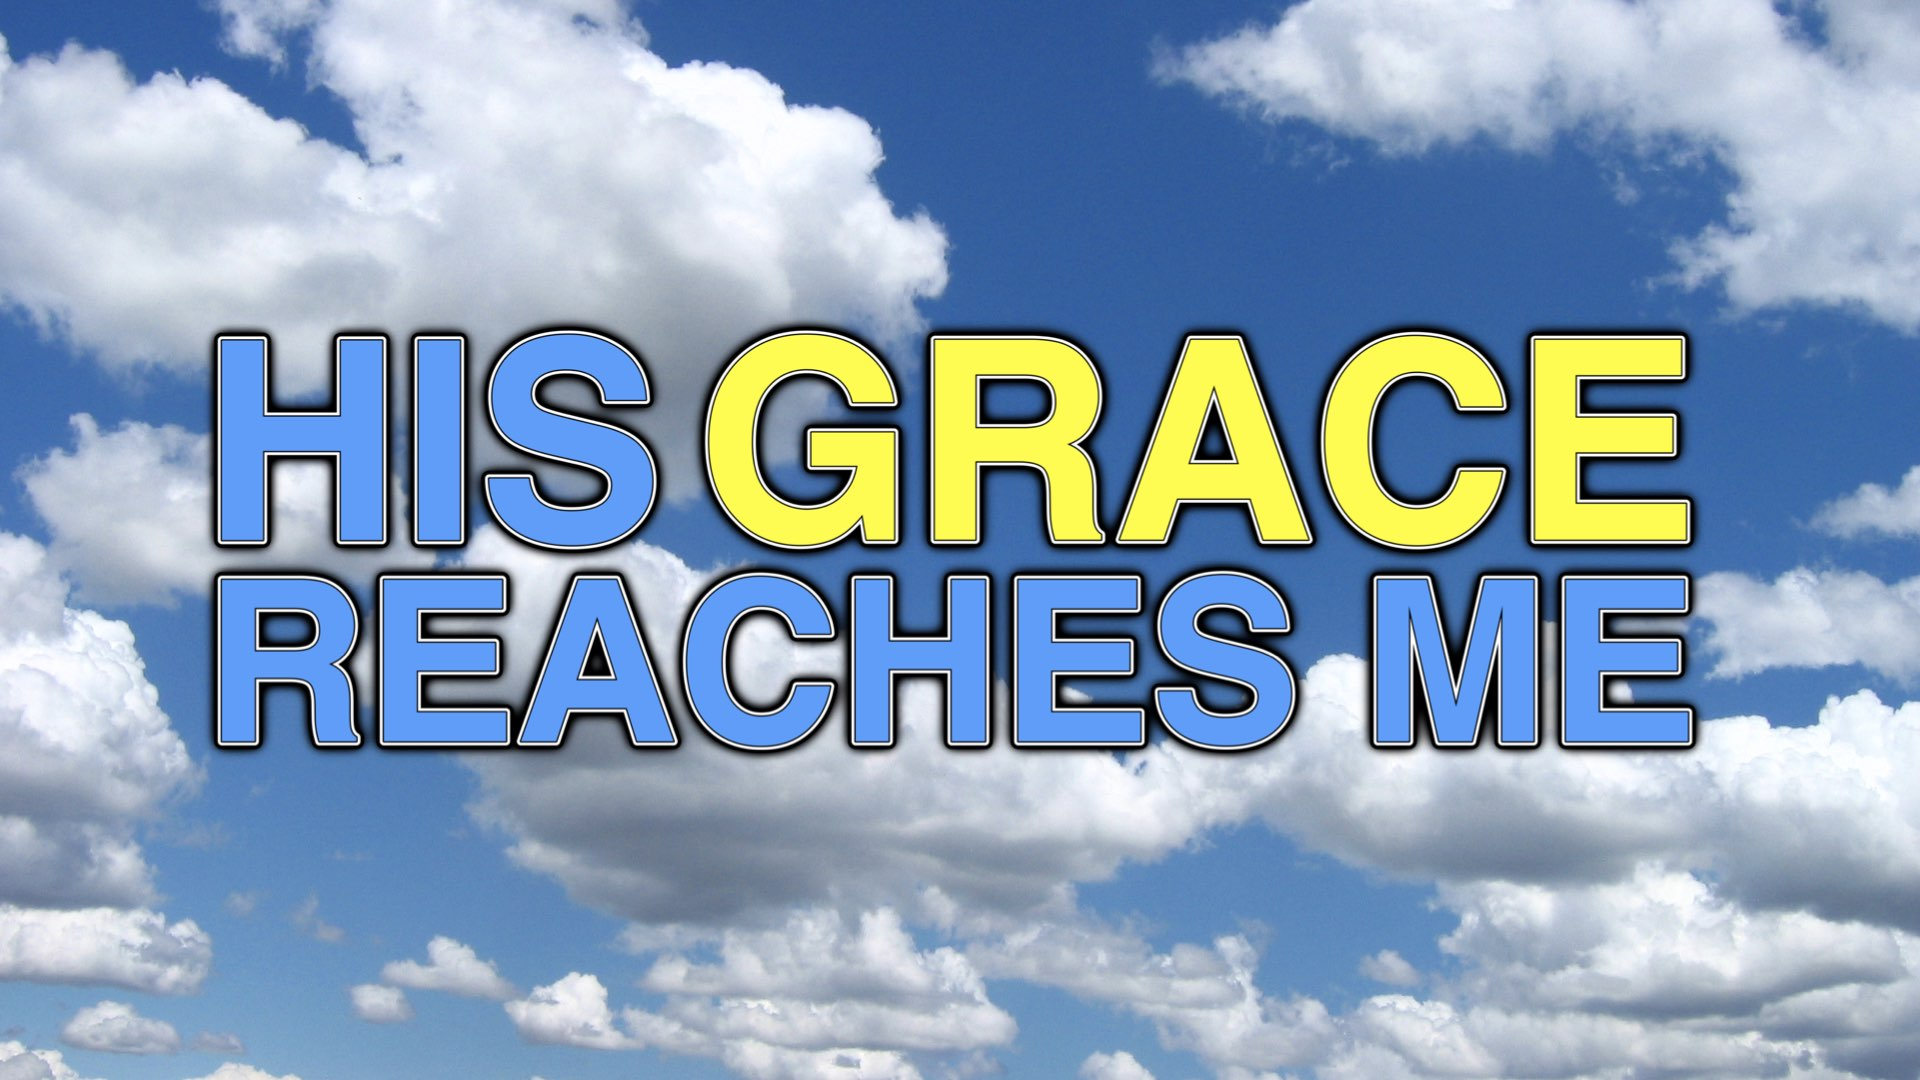 His Grace Reaches Me